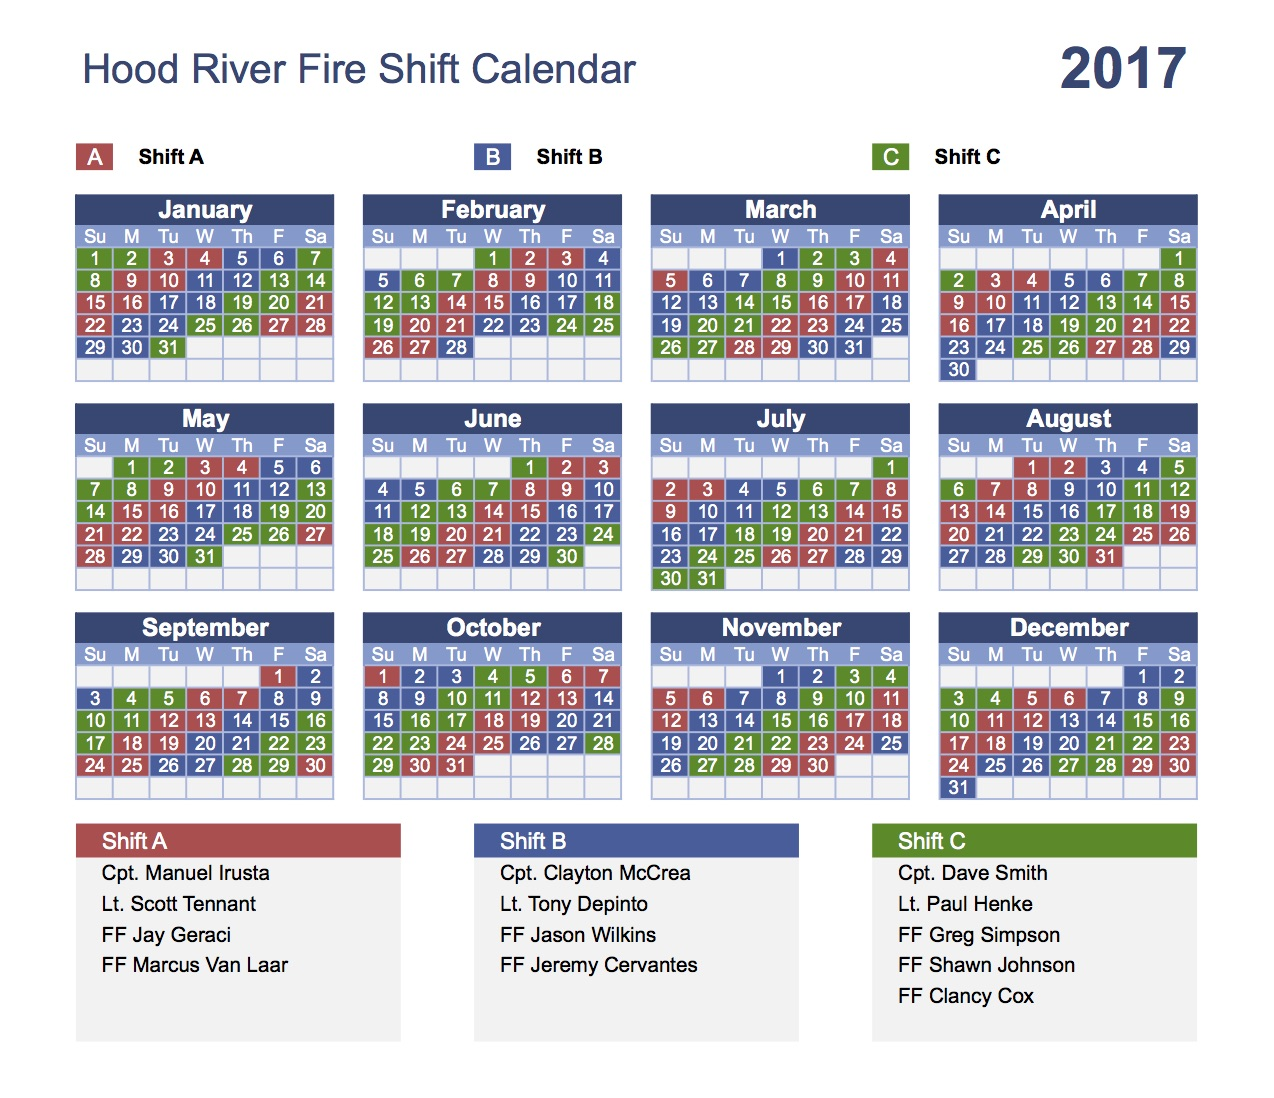 2017 HRFD Shift Schedule